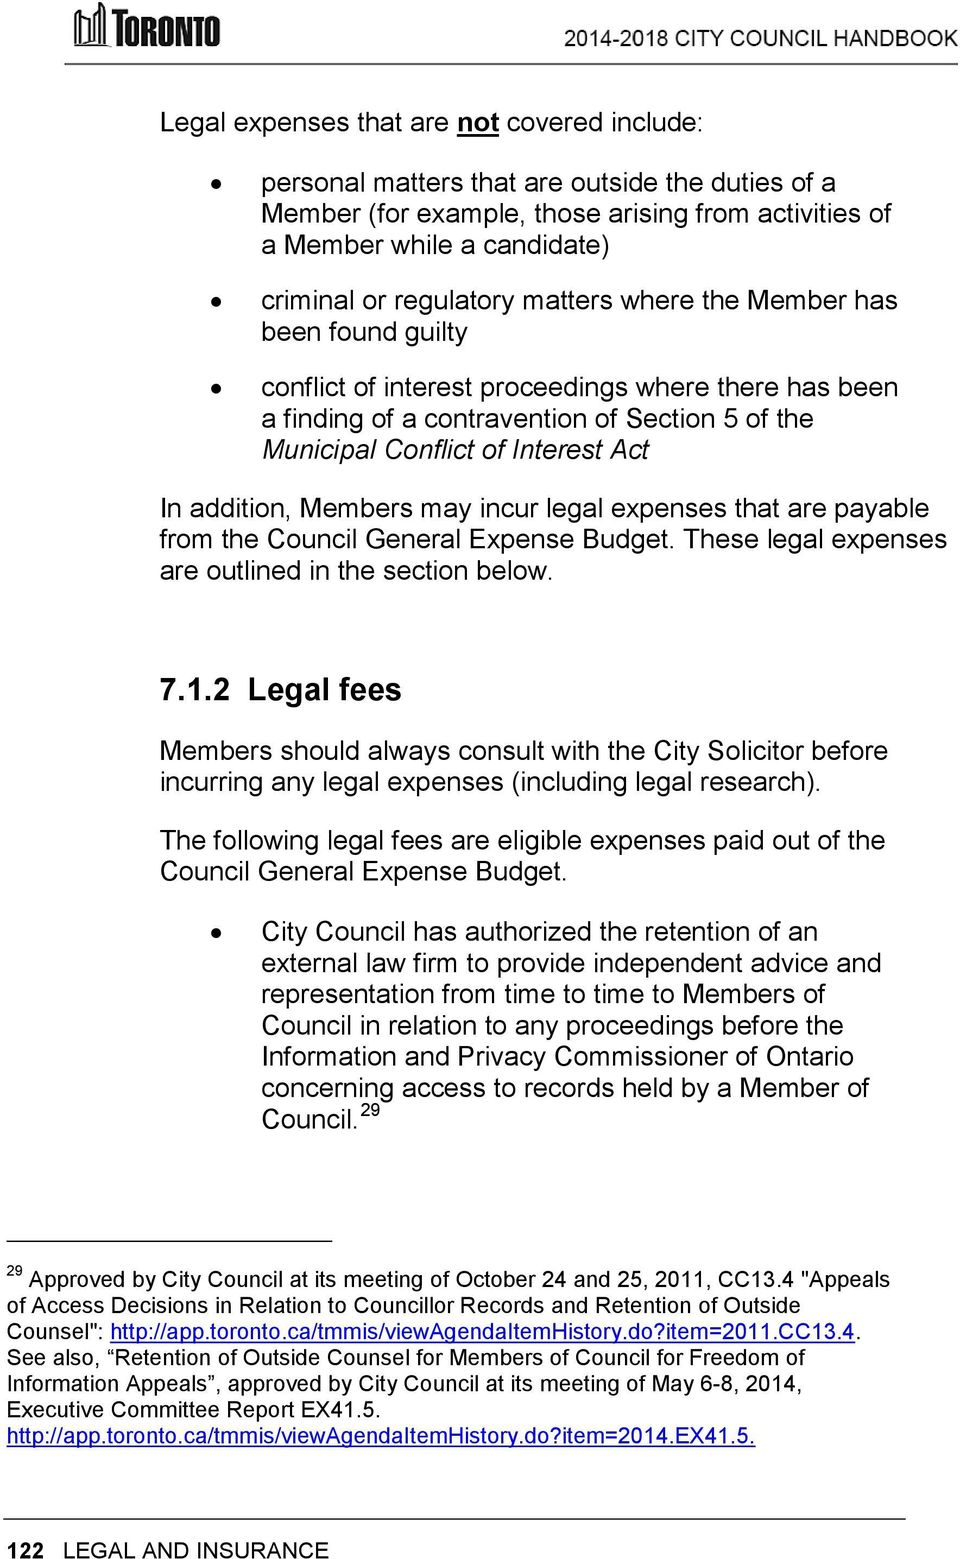 Members may incur legal expenses that are payable from the Council General Expense Budget. These legal expenses are outlined in the section below. 7.1.